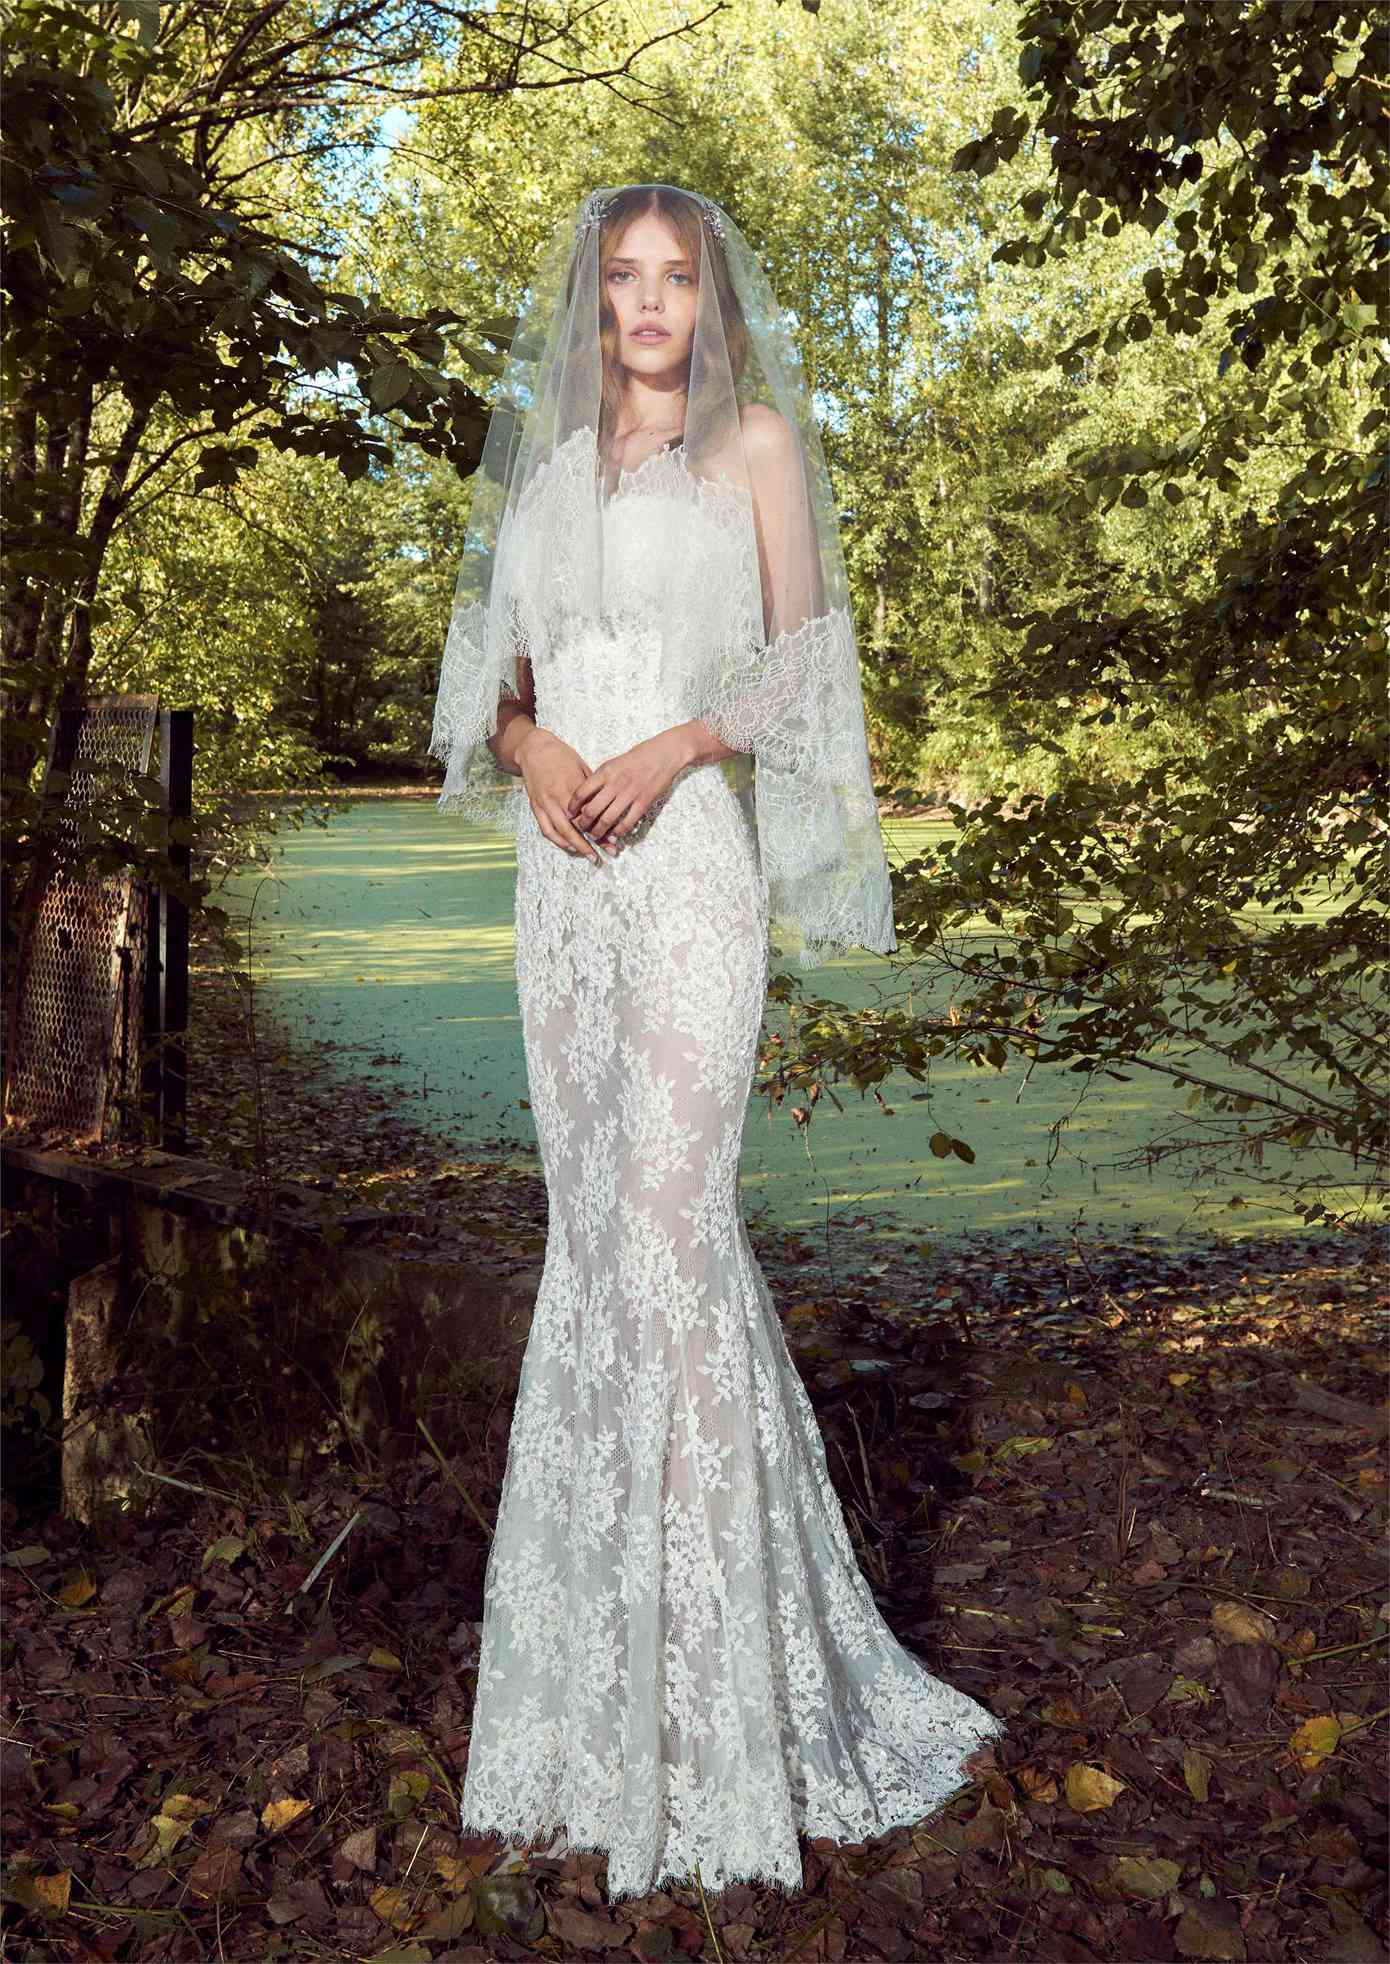 Model in a strapless tulle mermaid gown with lace embroidery and eyelash lace trim with a matching veil